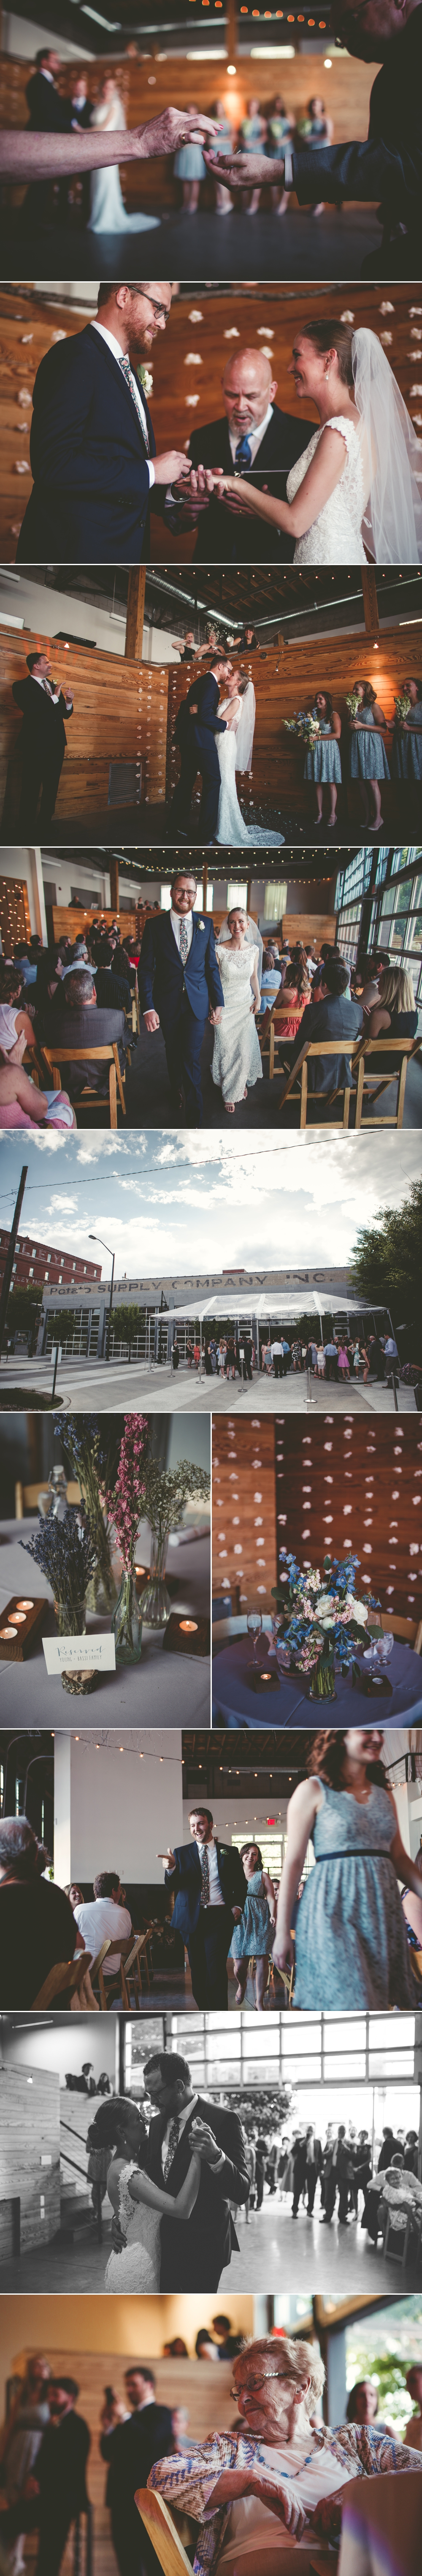 jason_domingues_photography_best_kansas_city_photographer_kc_weddings_river_market_event_place_3